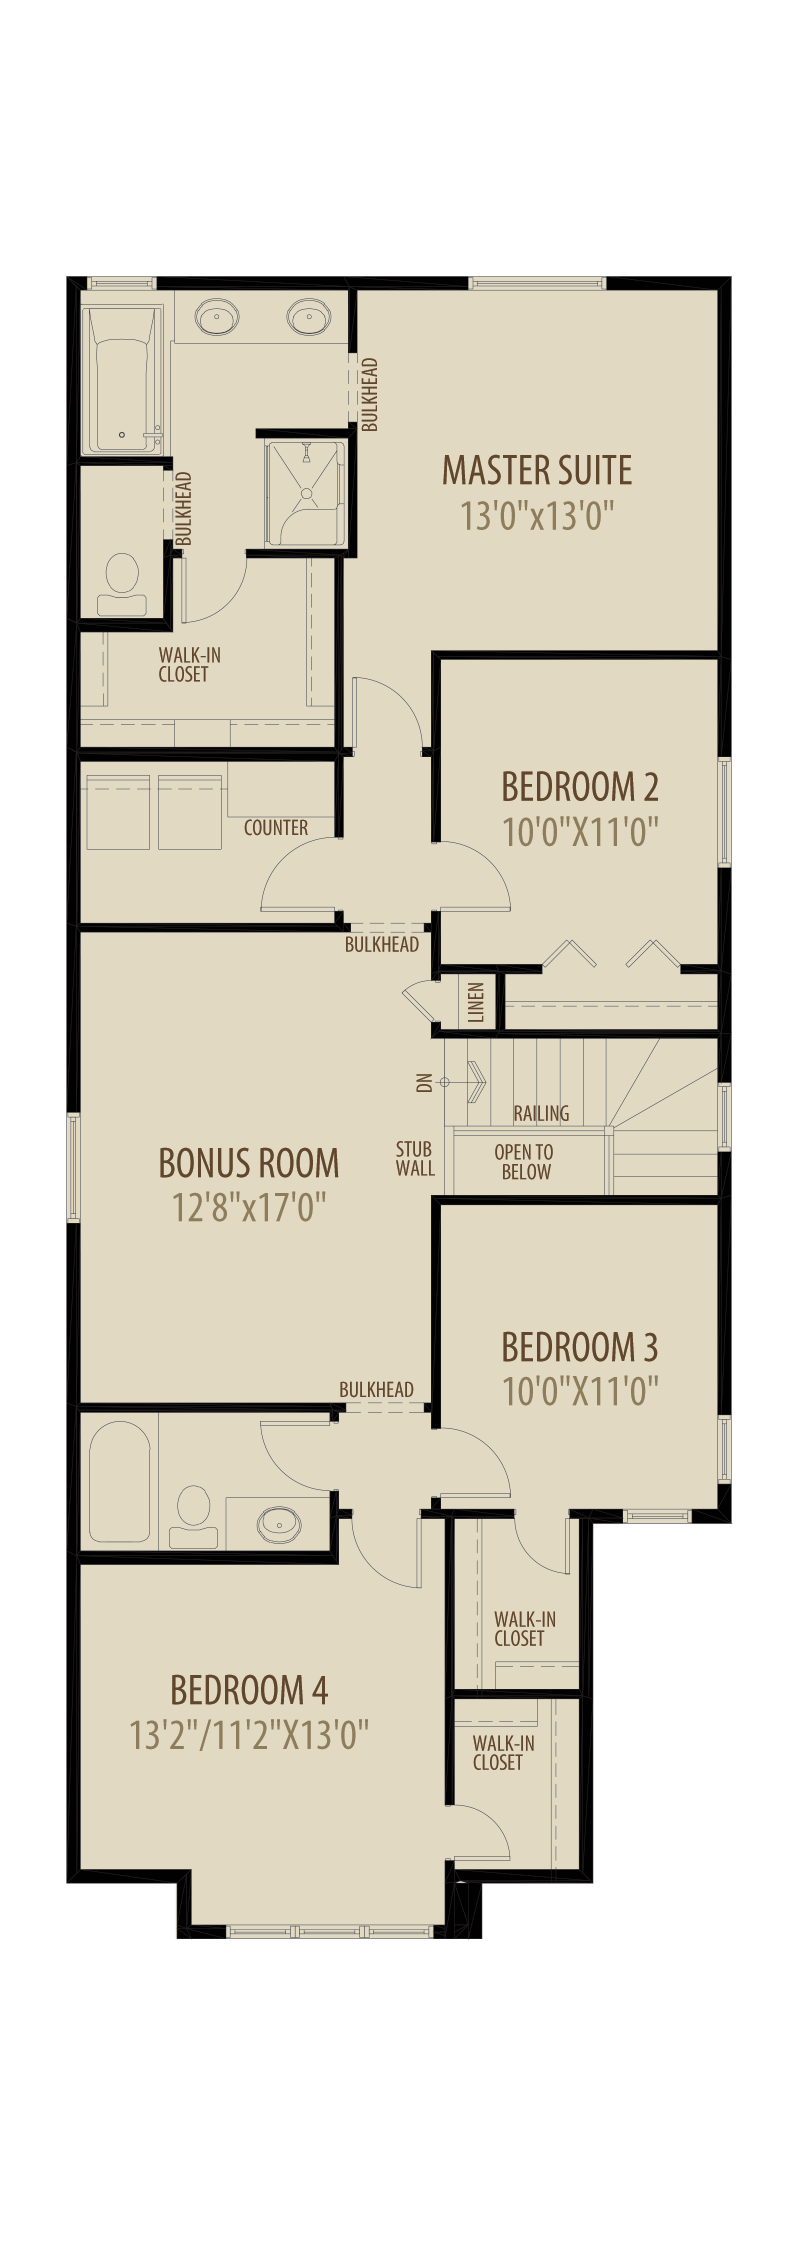 Option 9 4th Bed Central Bonus Room adds 236sq ft